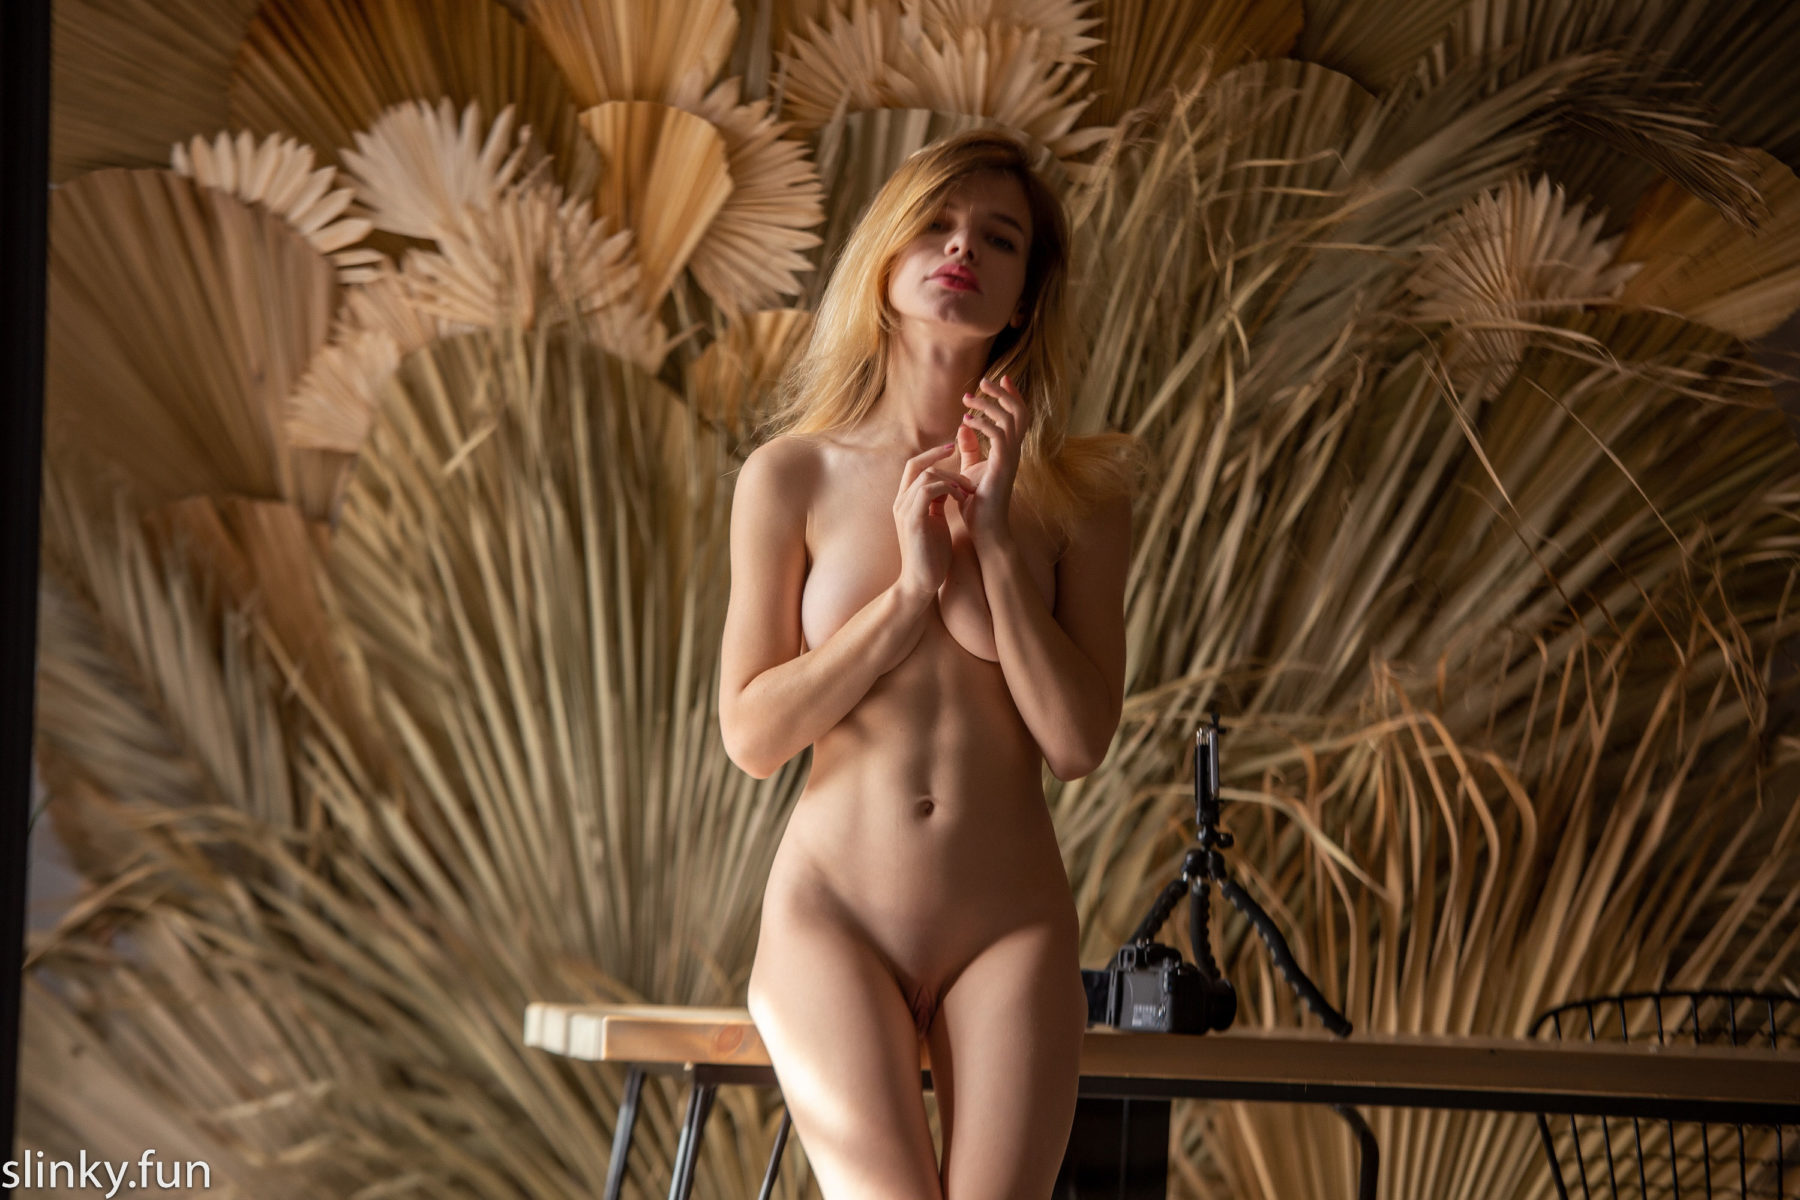 Masha Zaitseva - young nude model from the city of St. Petersburg